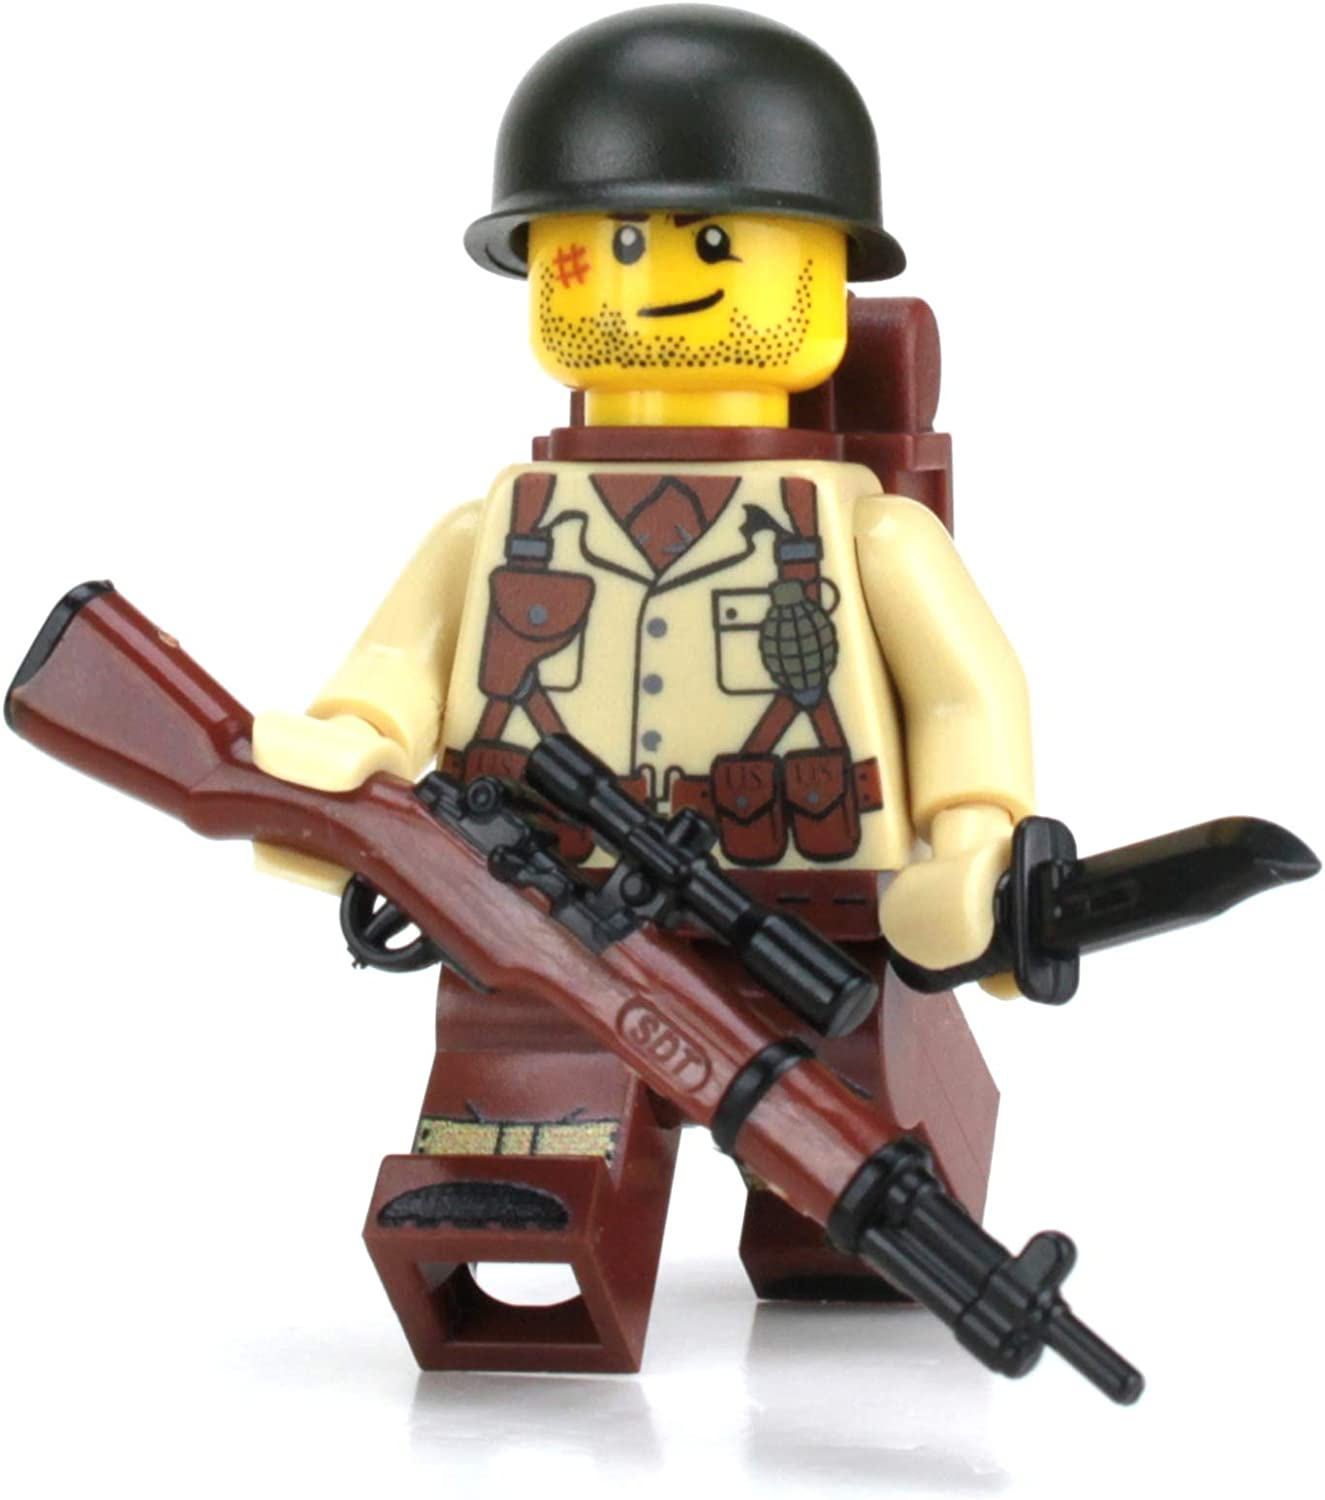 Brickarms overmolded Kar98 German rifle weapon for WWII minifigures minifigs